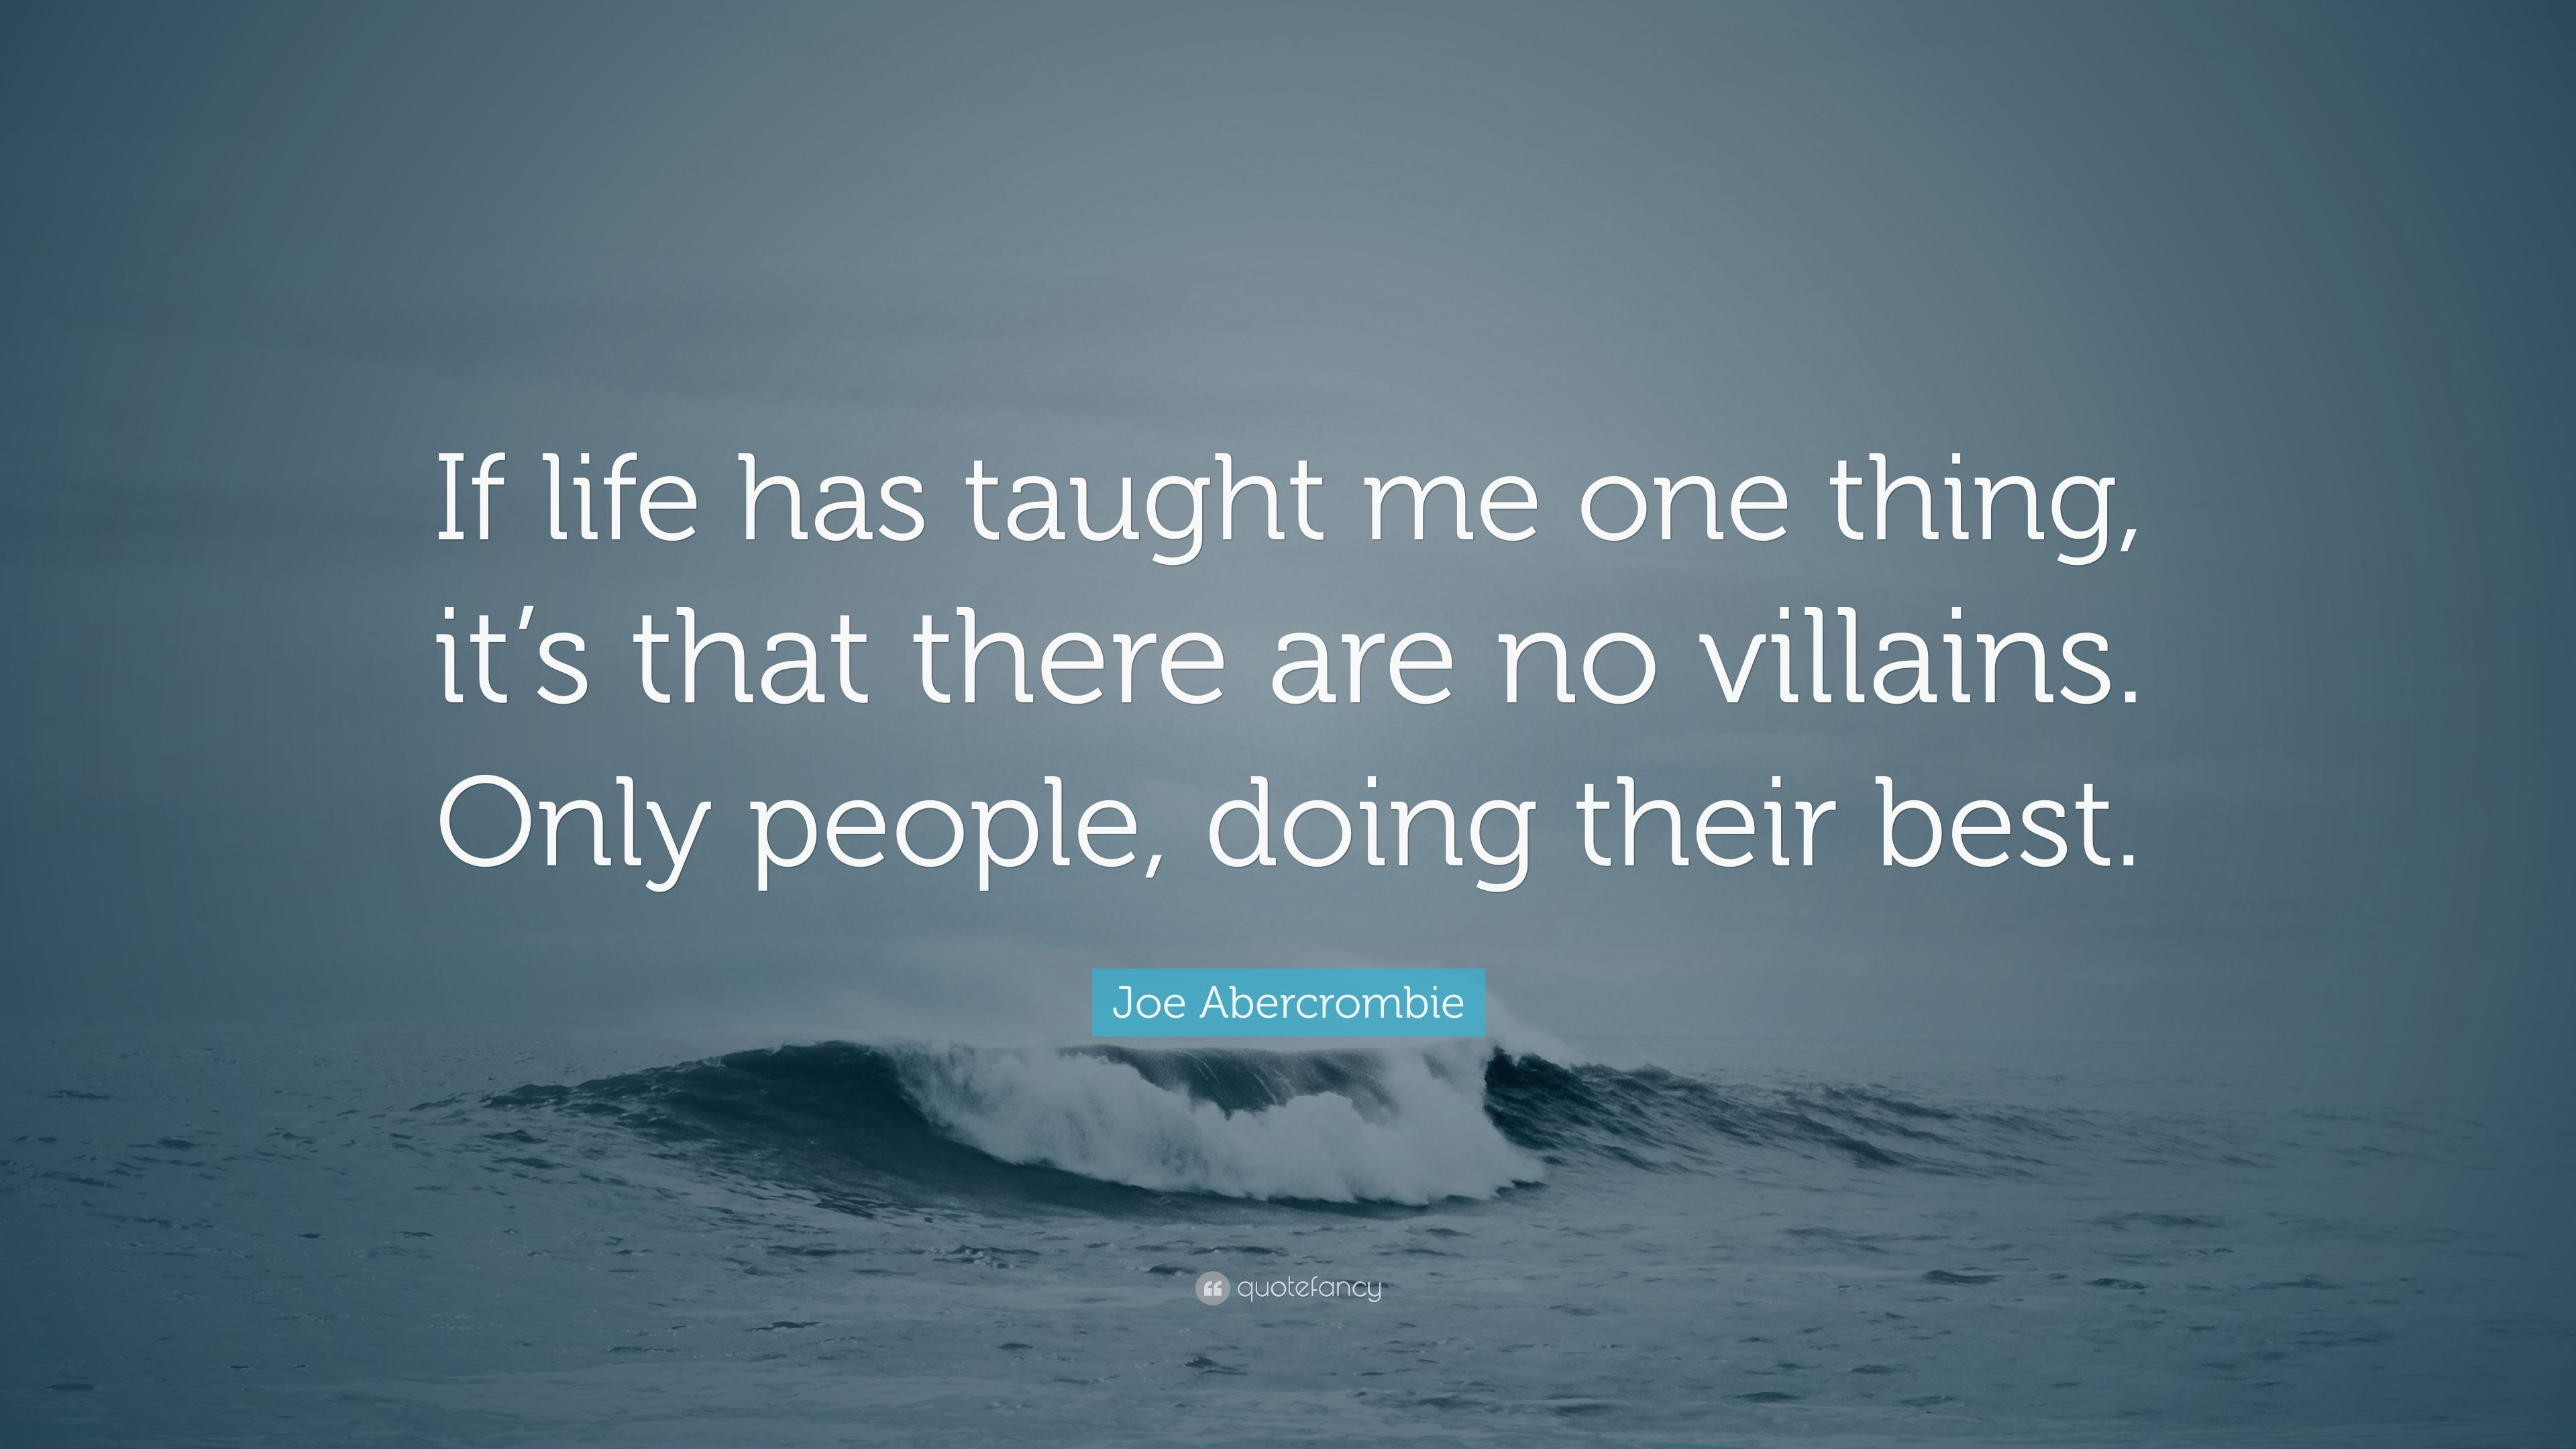 What Life Has Taught Me Quotes Joe Abercrombie Quote U201cIf Life Has Taught Me  One